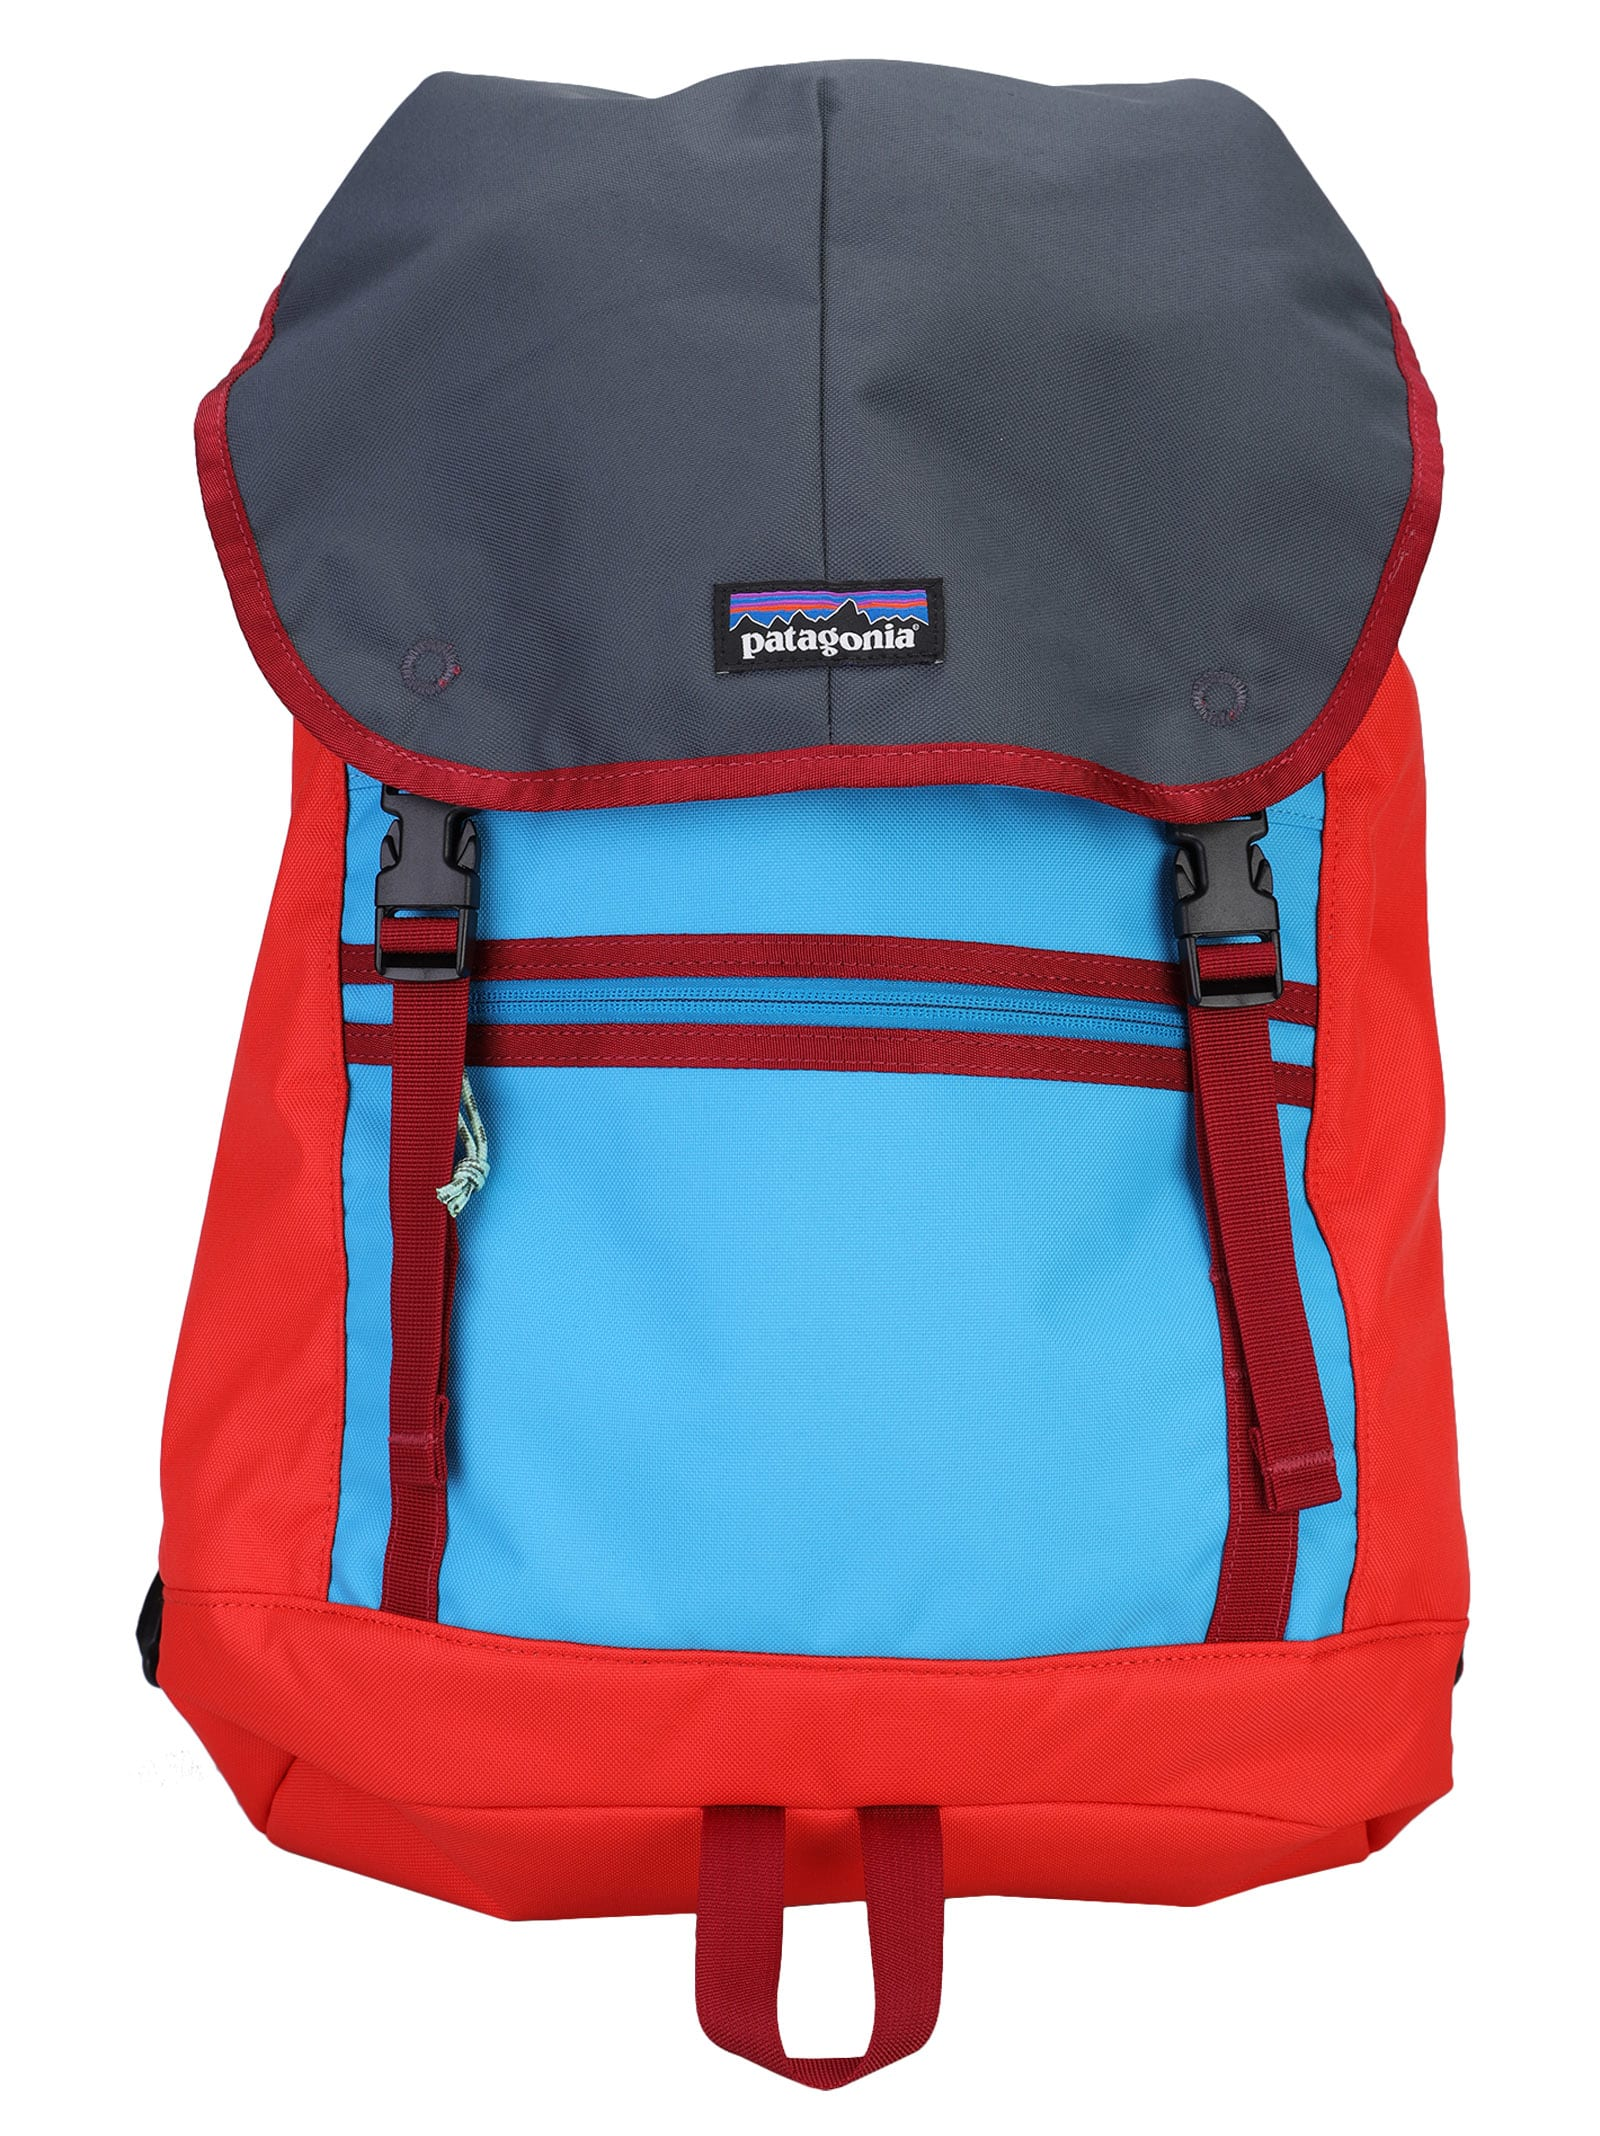 Multicolor Arbor 25l Backpack By Patagonia. Featuring: - Top Handle; - Foldover Top With Double Buckle Fastening; - Drawstring Fastening; - Logo Patch To The Front; - Front Zip Pocket; - Colour Block Design; - Adjustable Shoulder Straps. Composition: 100% RECYCLED POLYESTER